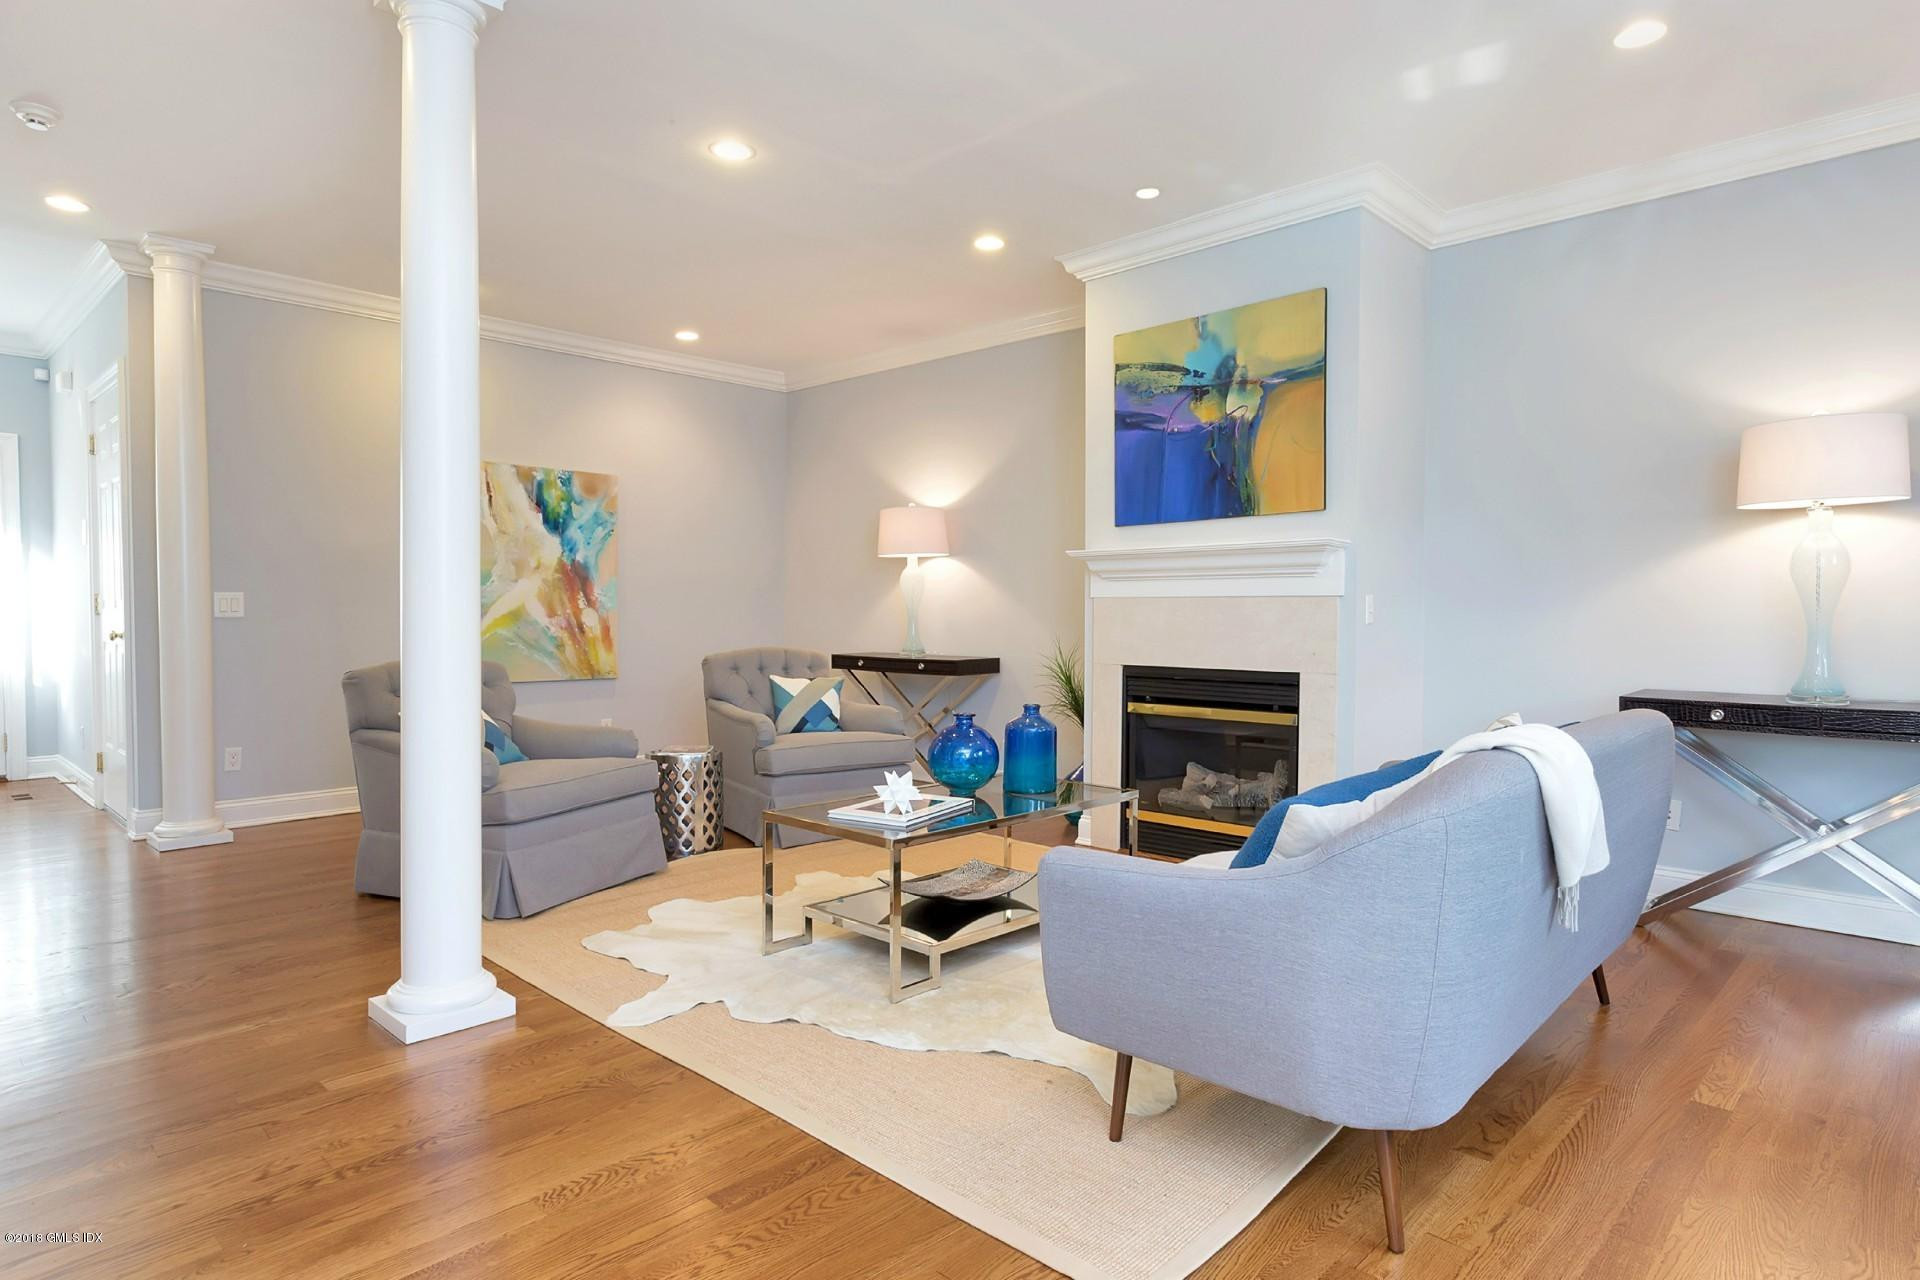 hardwood flooring greenwich ct of 147 holly hill lane greenwich ct 06830 mls 103986 david throughout 147 holly hill lane greenwich ct 06830